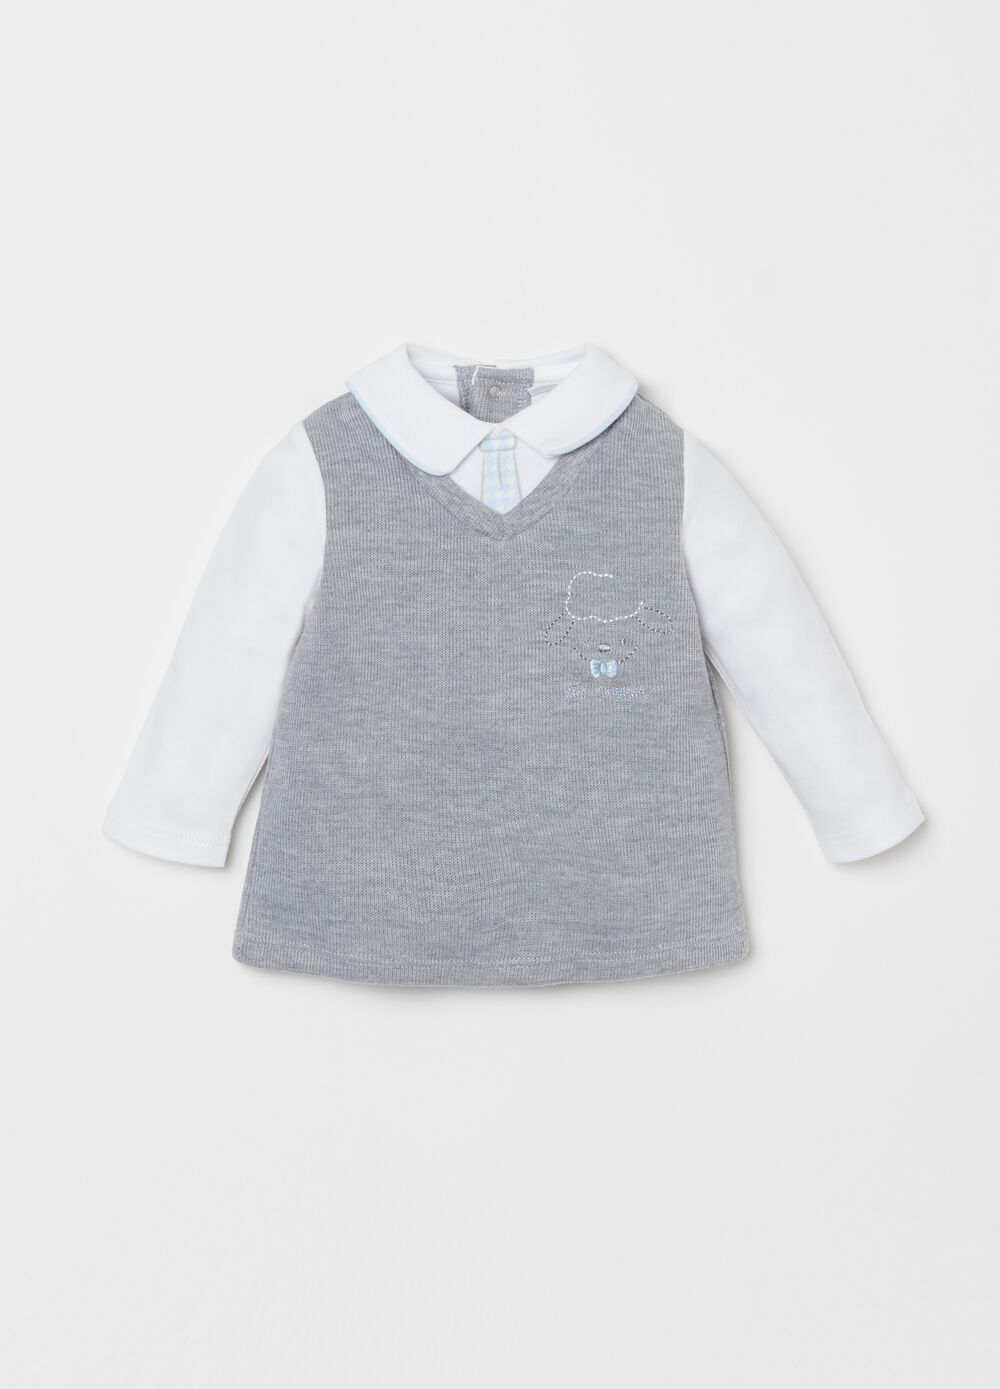 Long-sleeved T-shirt with gilet and embroidery